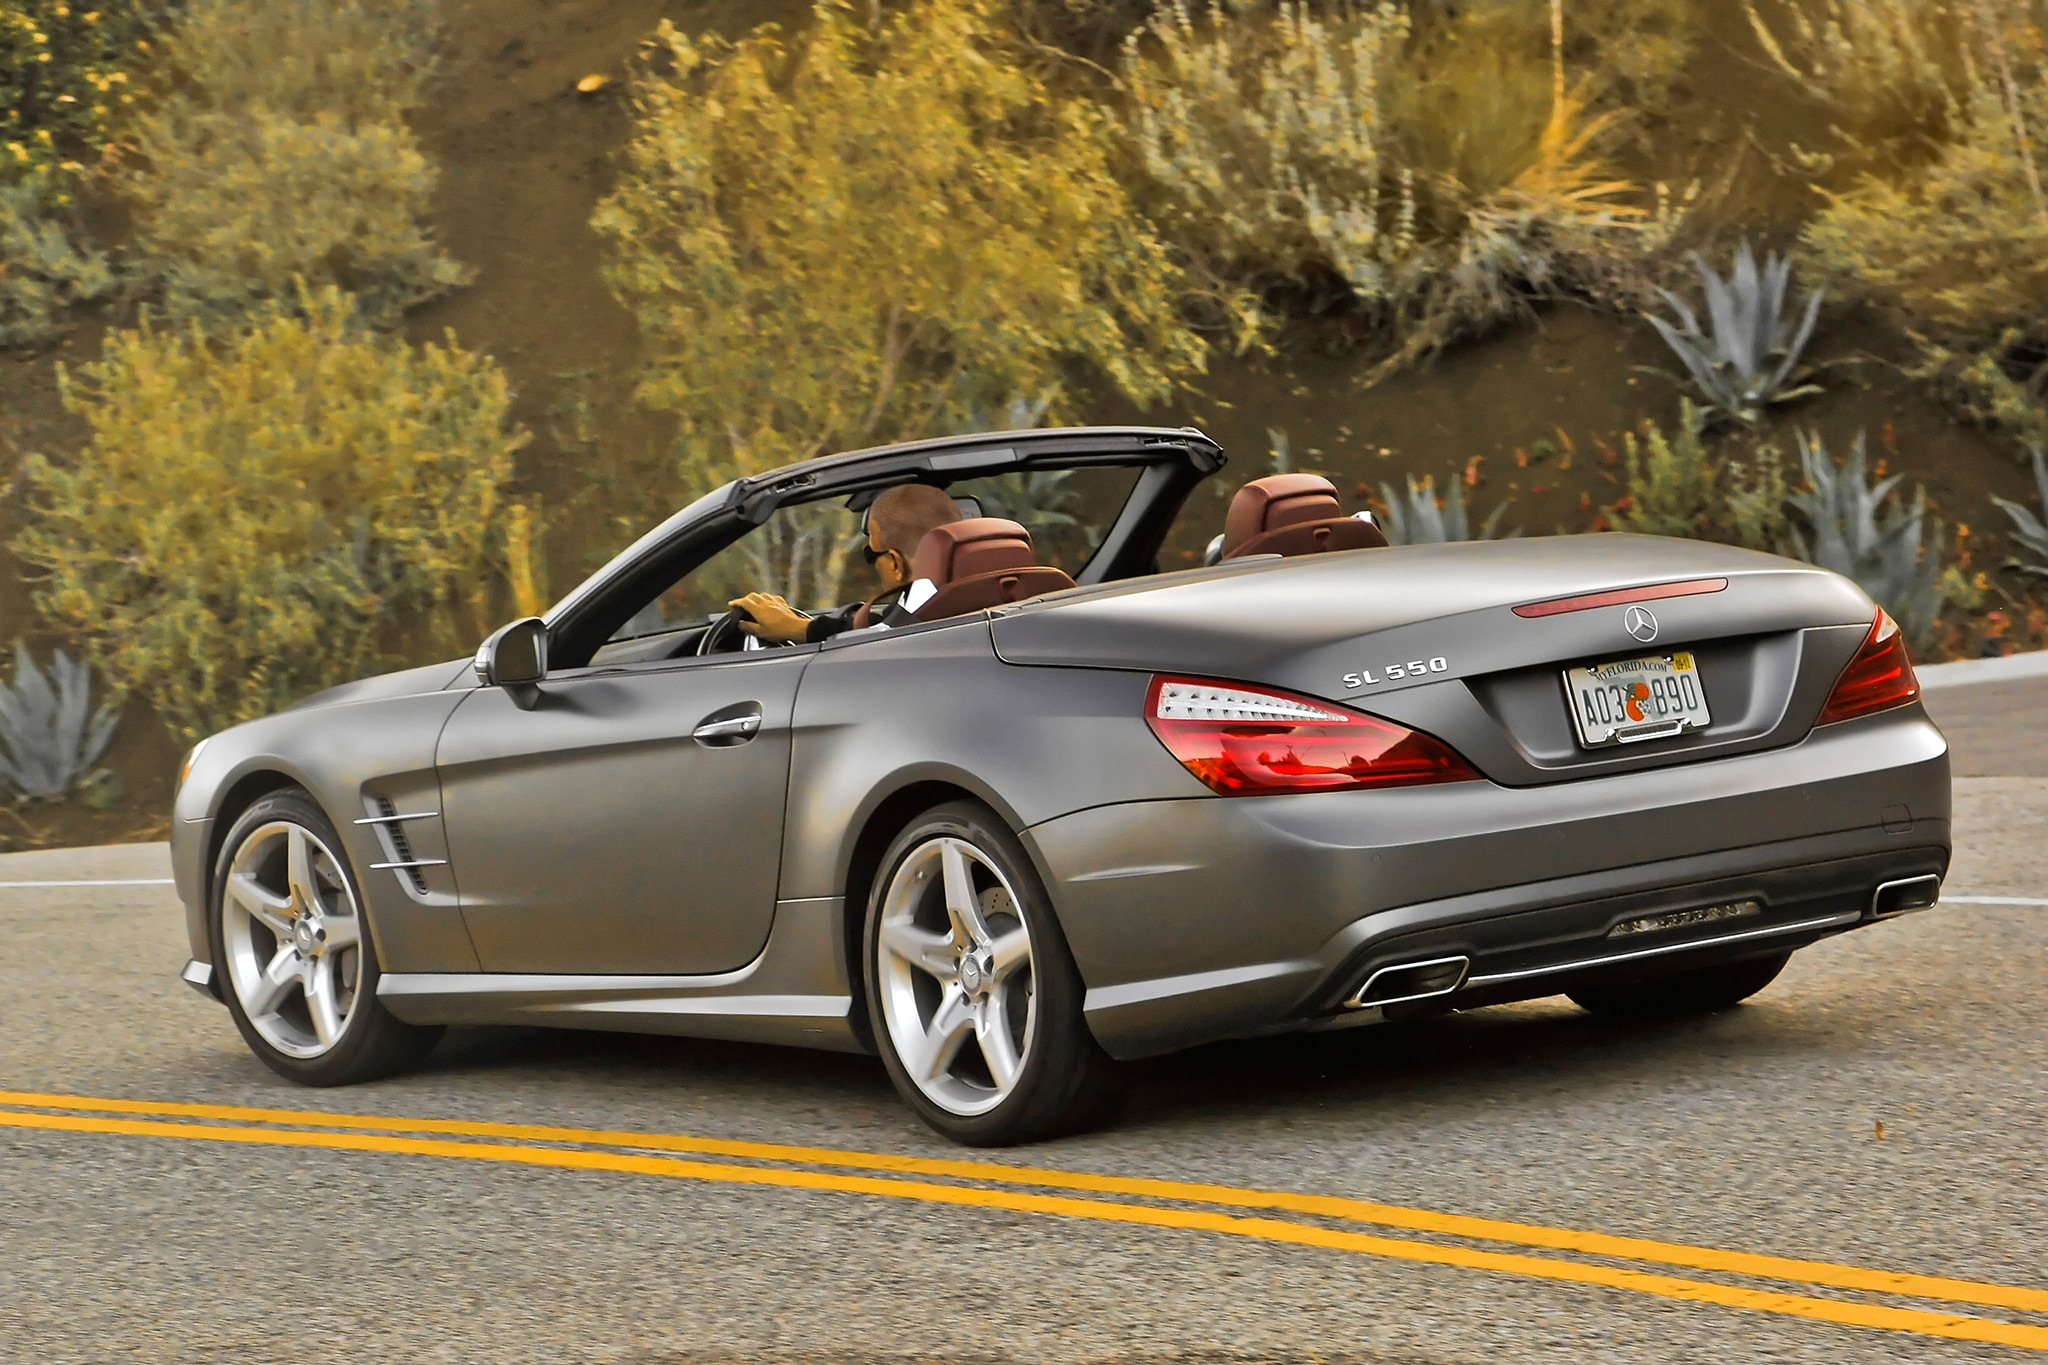 2015 mercedes benz sl400 receives new turbocharged v 6 for Mercedes benz hardtop convertible 2014